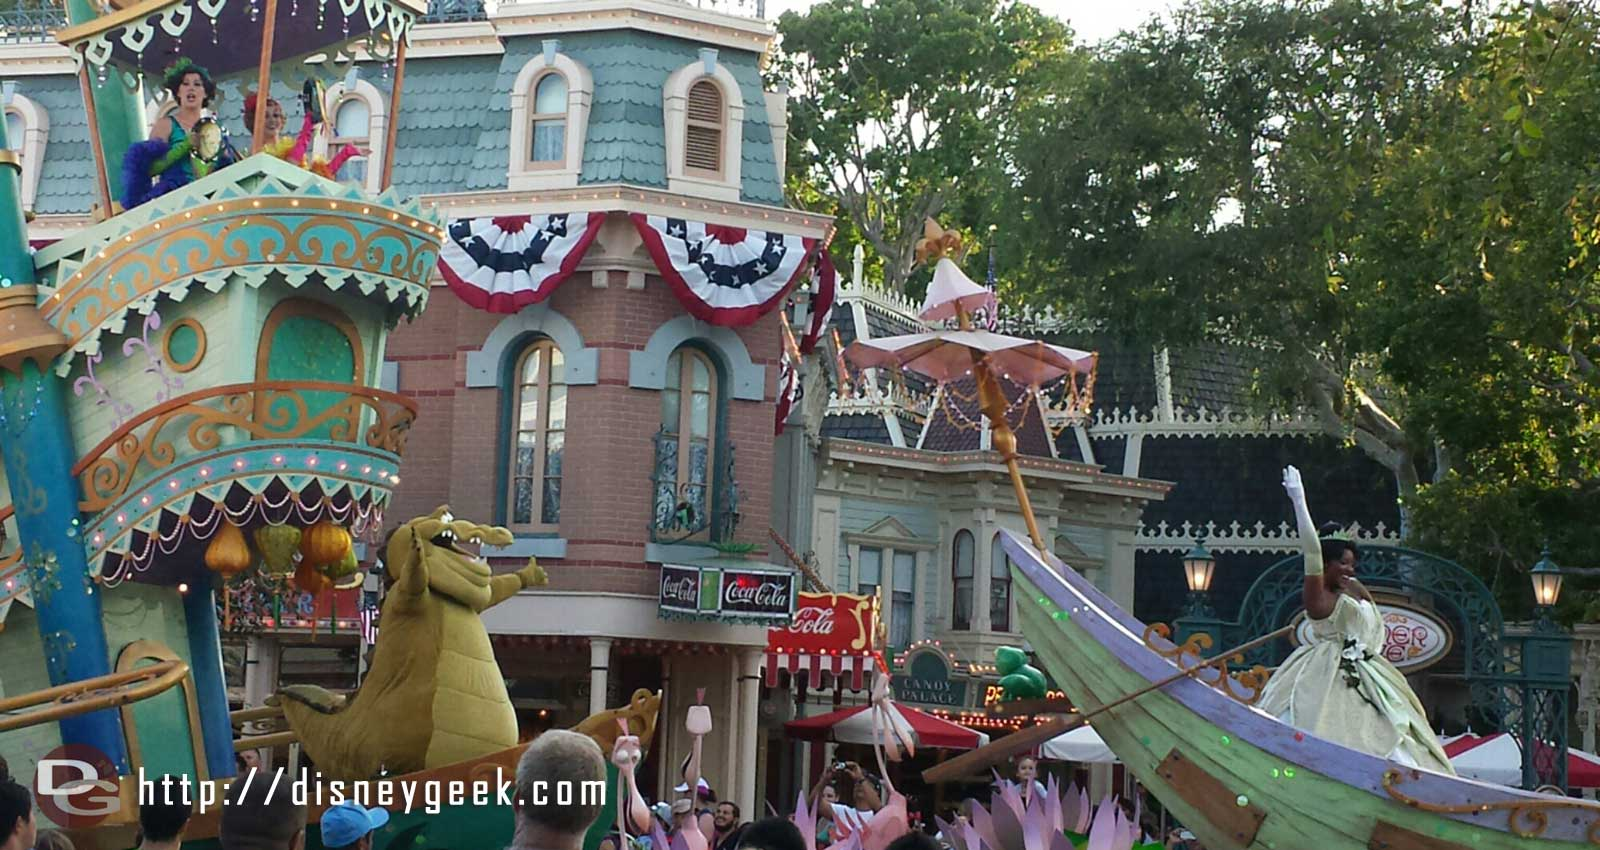 Mickey's Soundsational Parade – Princess and the Frog group